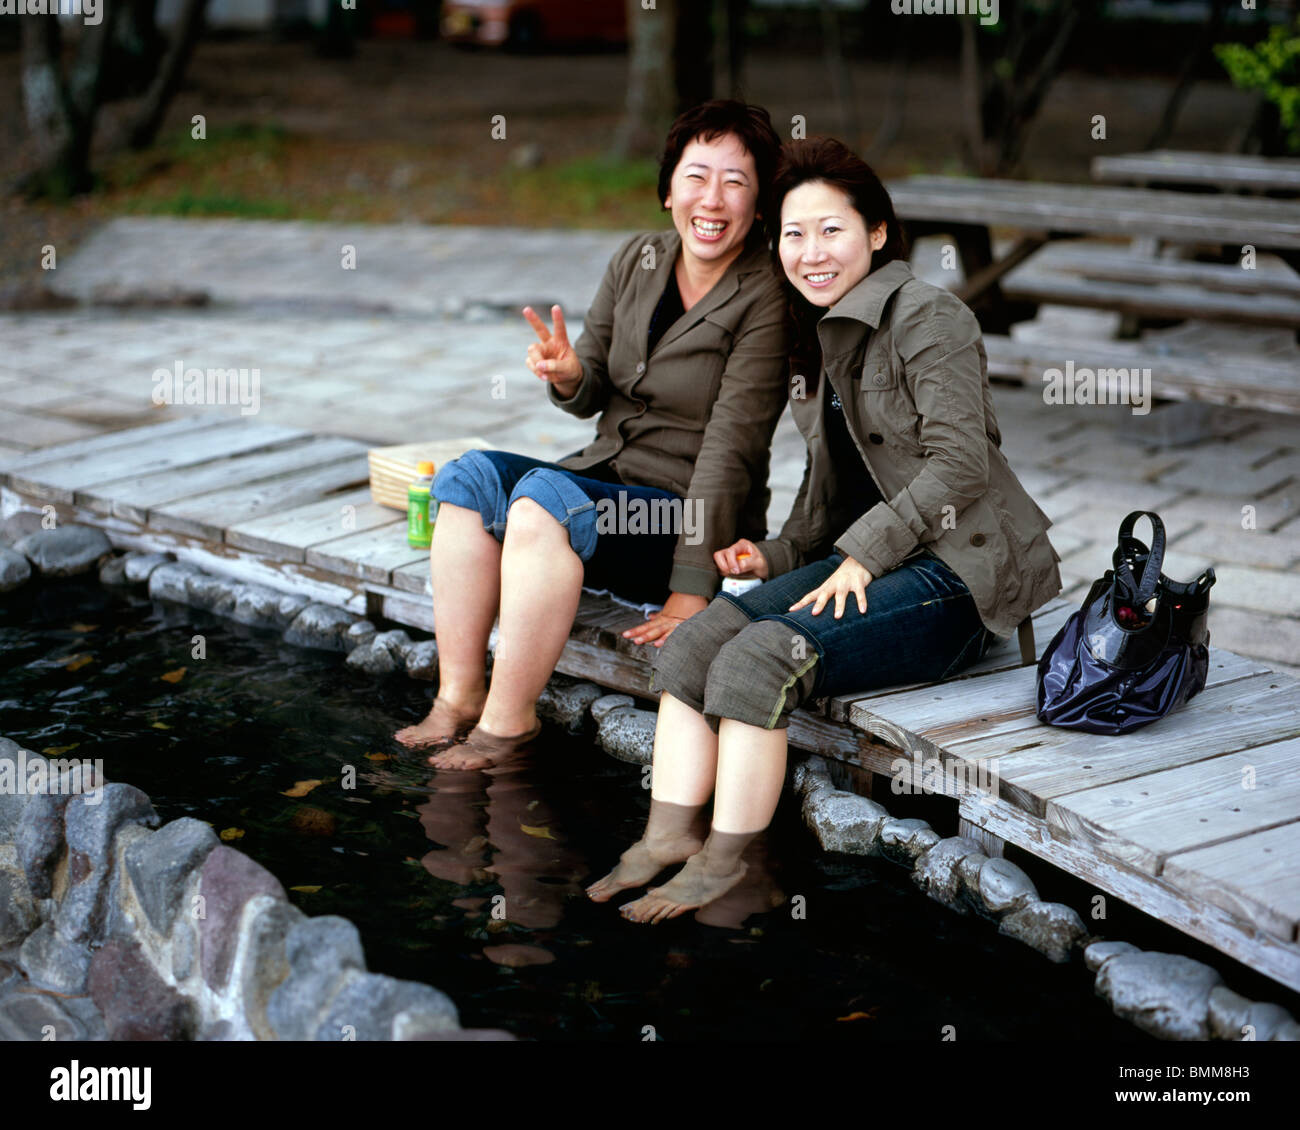 Japanese women soak the feet in warm waters at a Beppu onsen - Stock Image